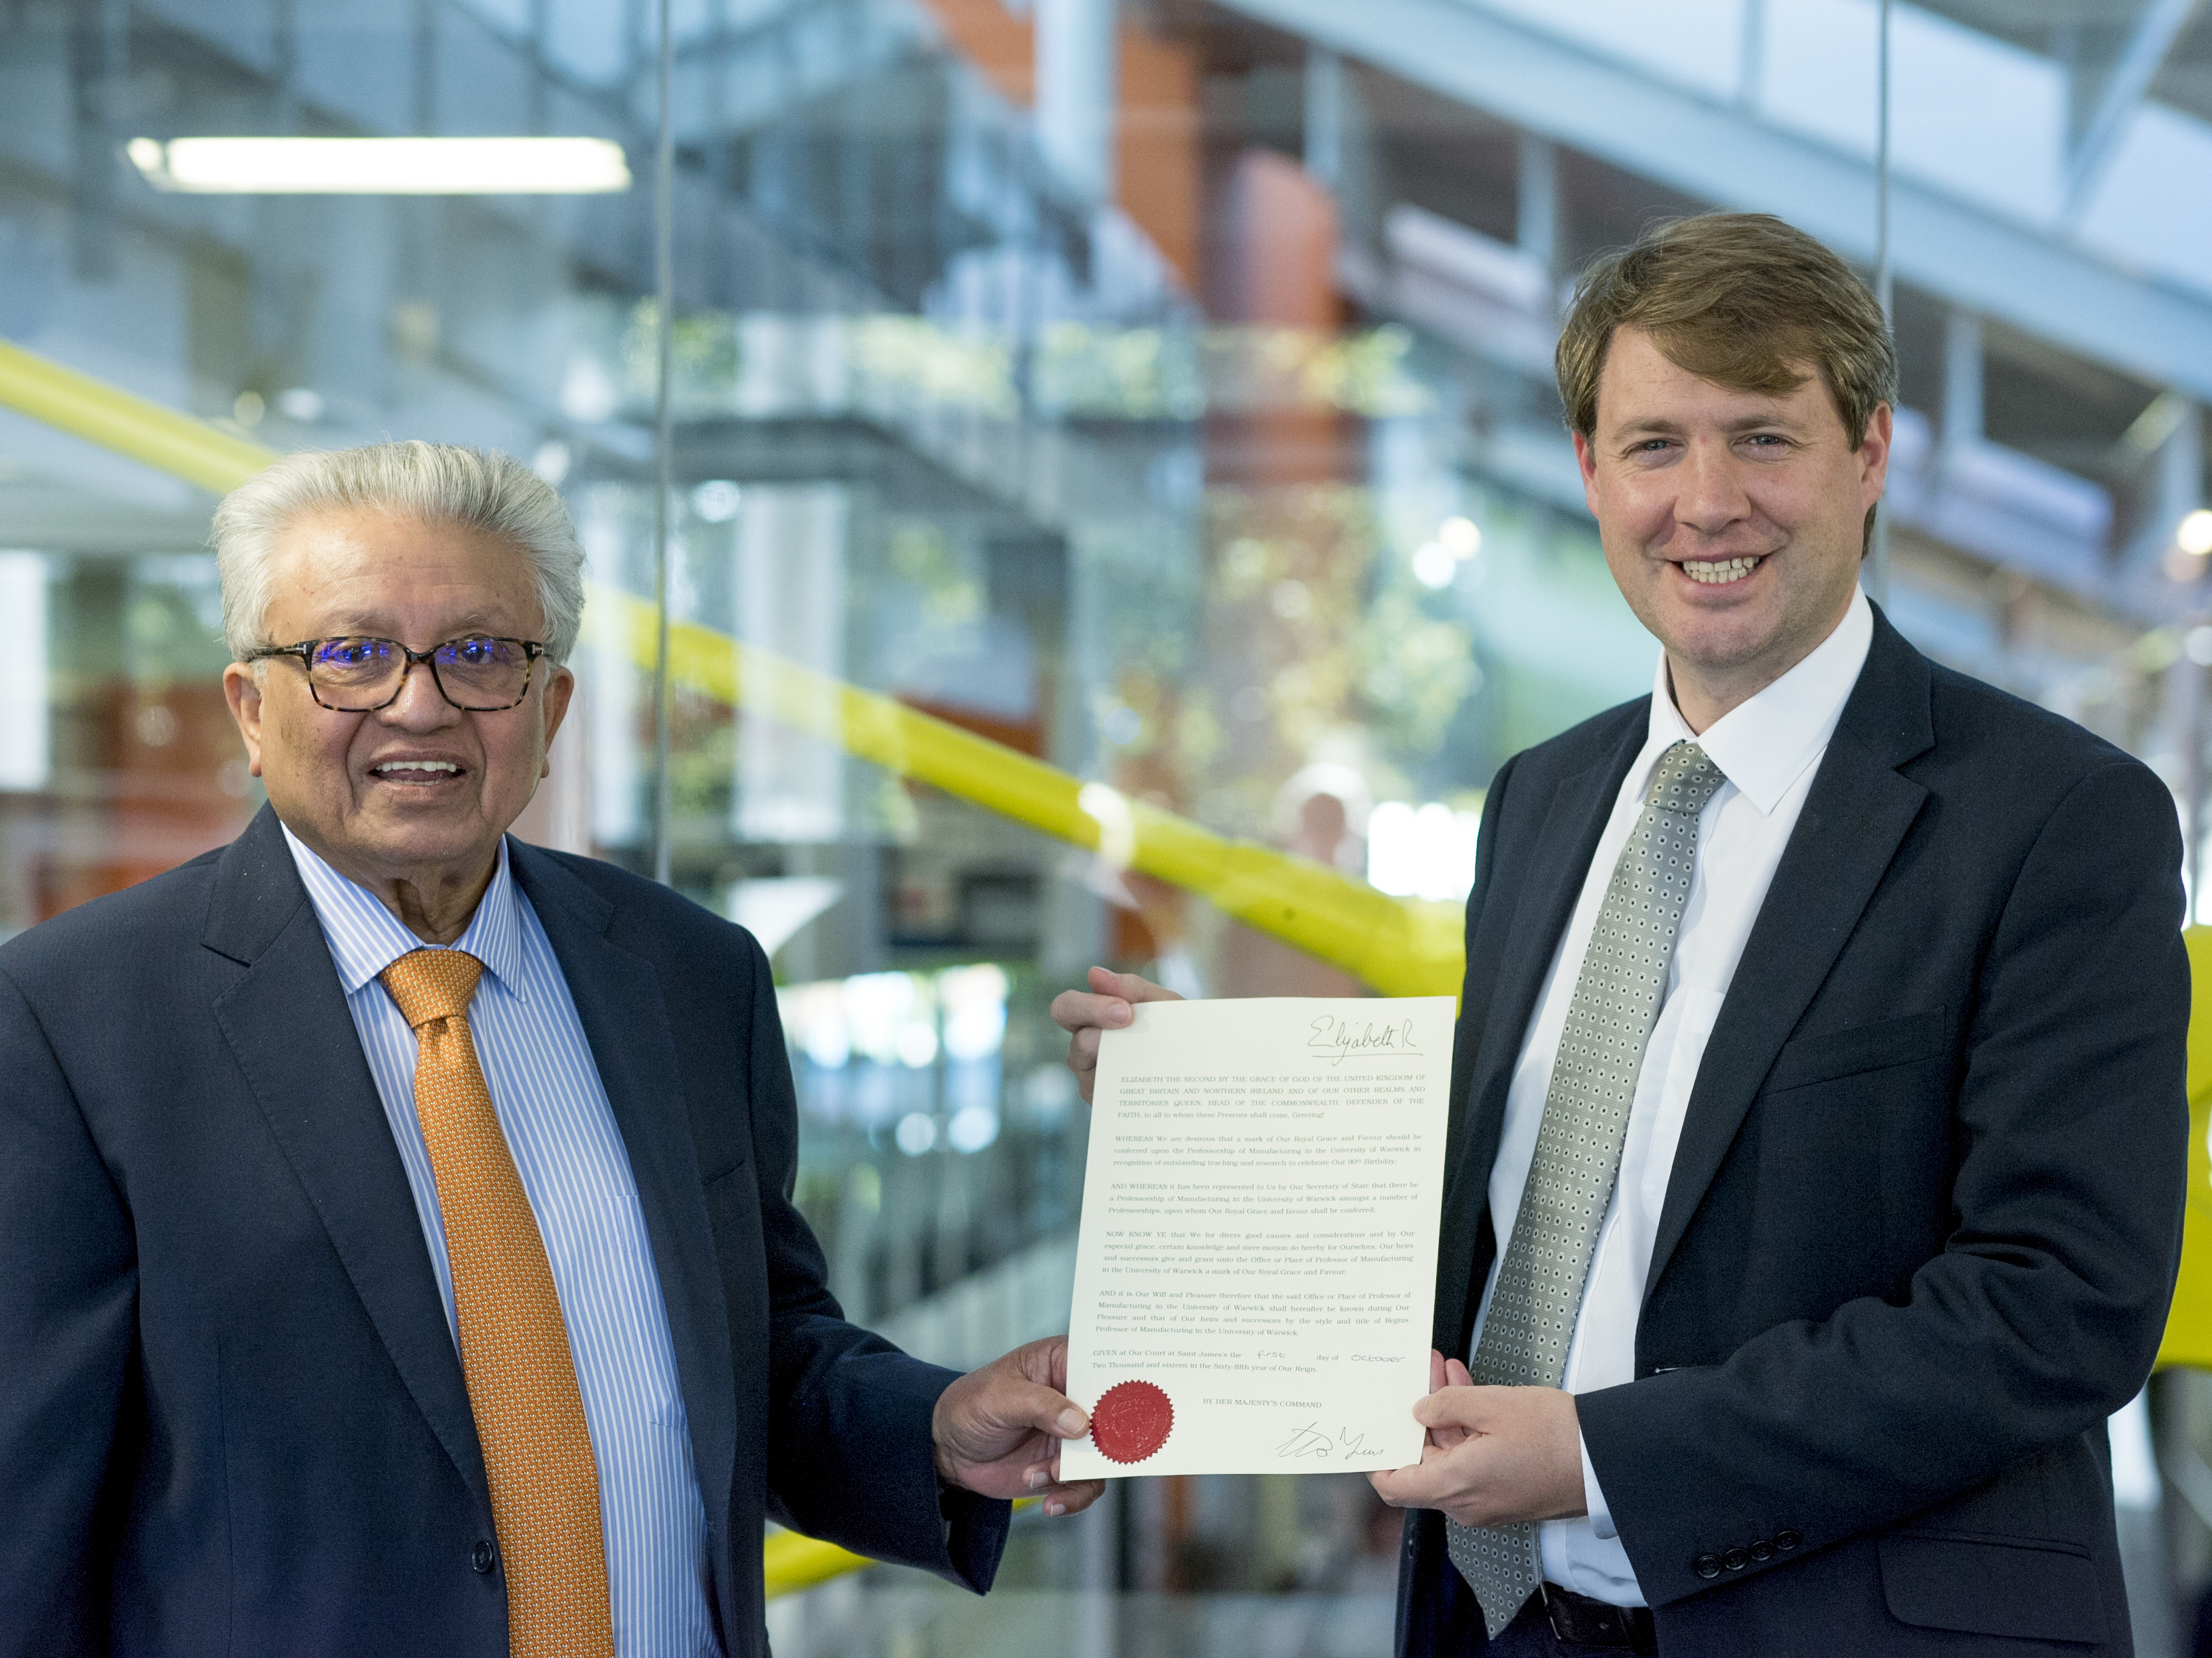 Minister For The Constitution Presents Wmg University Of Warwick